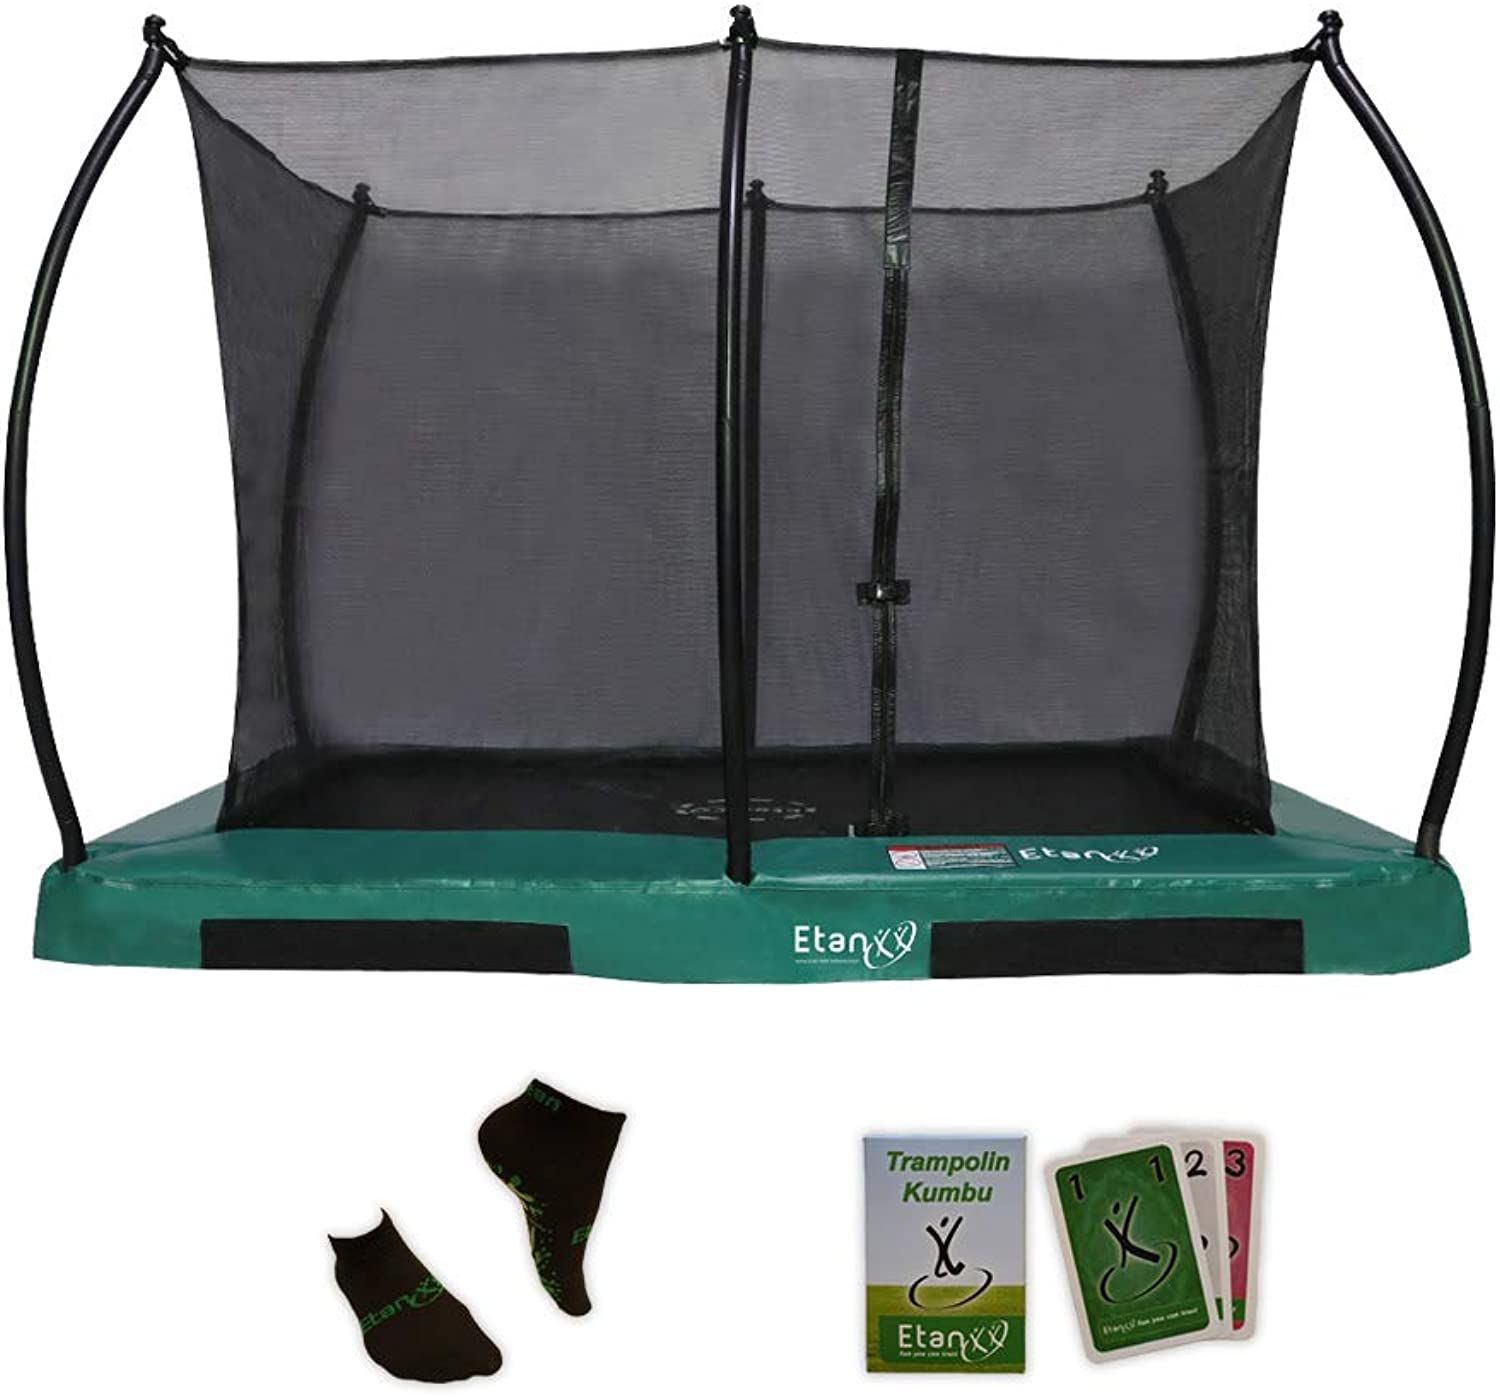 Etan Hi-Flyer Outdoor Boden Trampolin mit starkem Sicherheitsnetz – Inground Gartentrampolin mit UV-Bestendiges Randabdeckung - eingegraben in-ground Kinder Trampolin mit Netz - Rechteckig - Grün